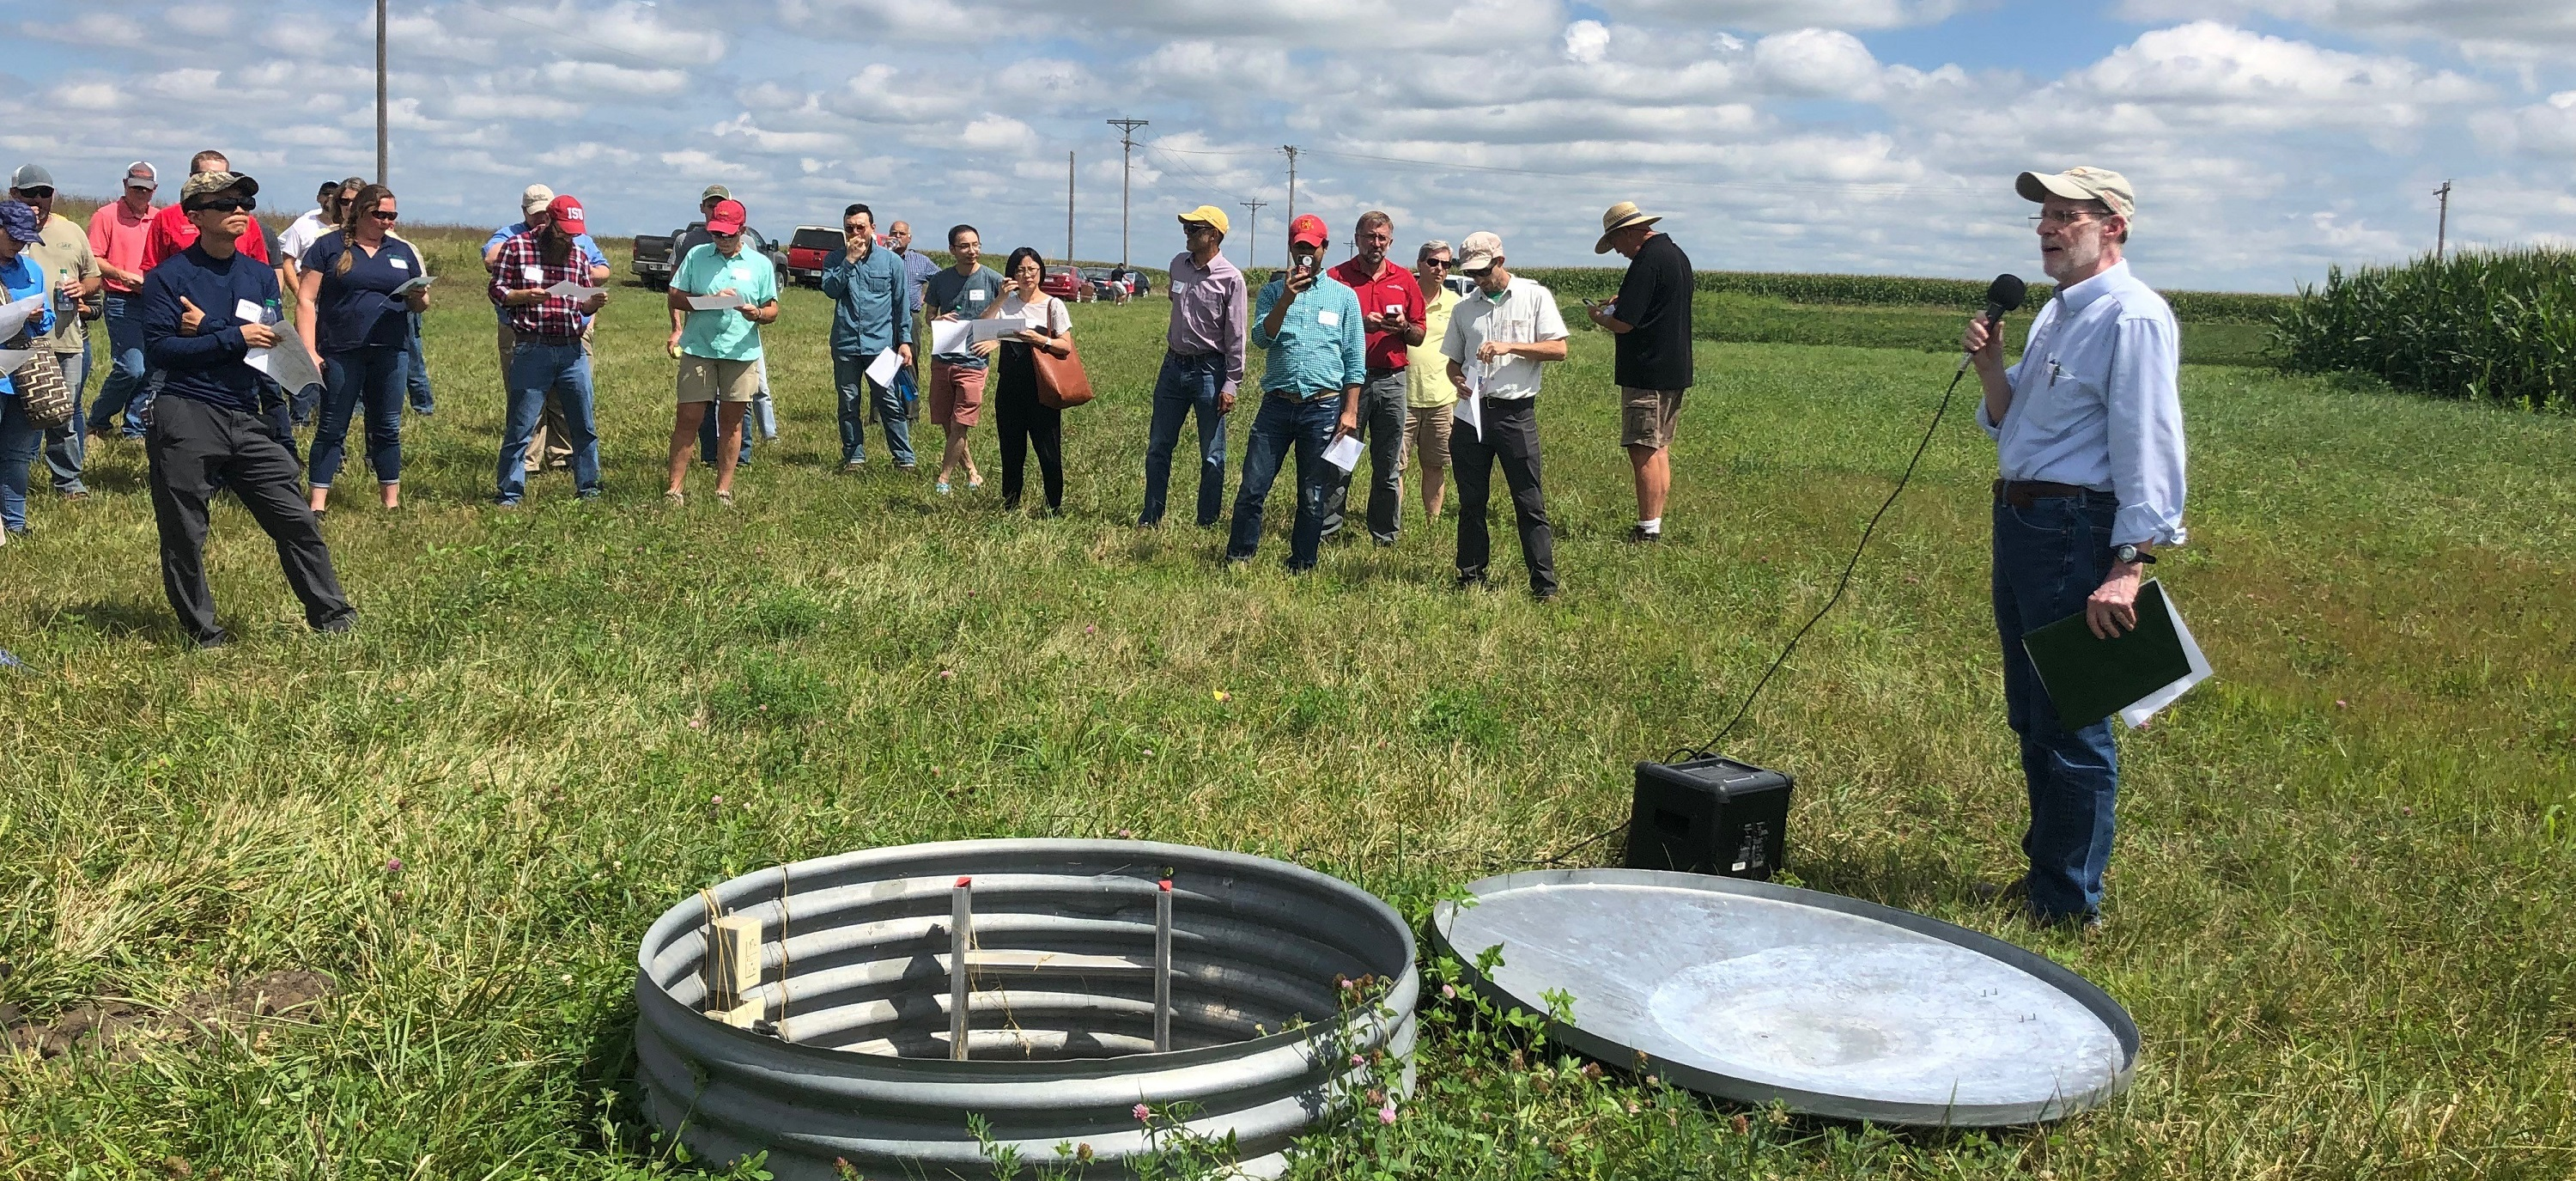 Researcher Field Day, INRC, August 2019